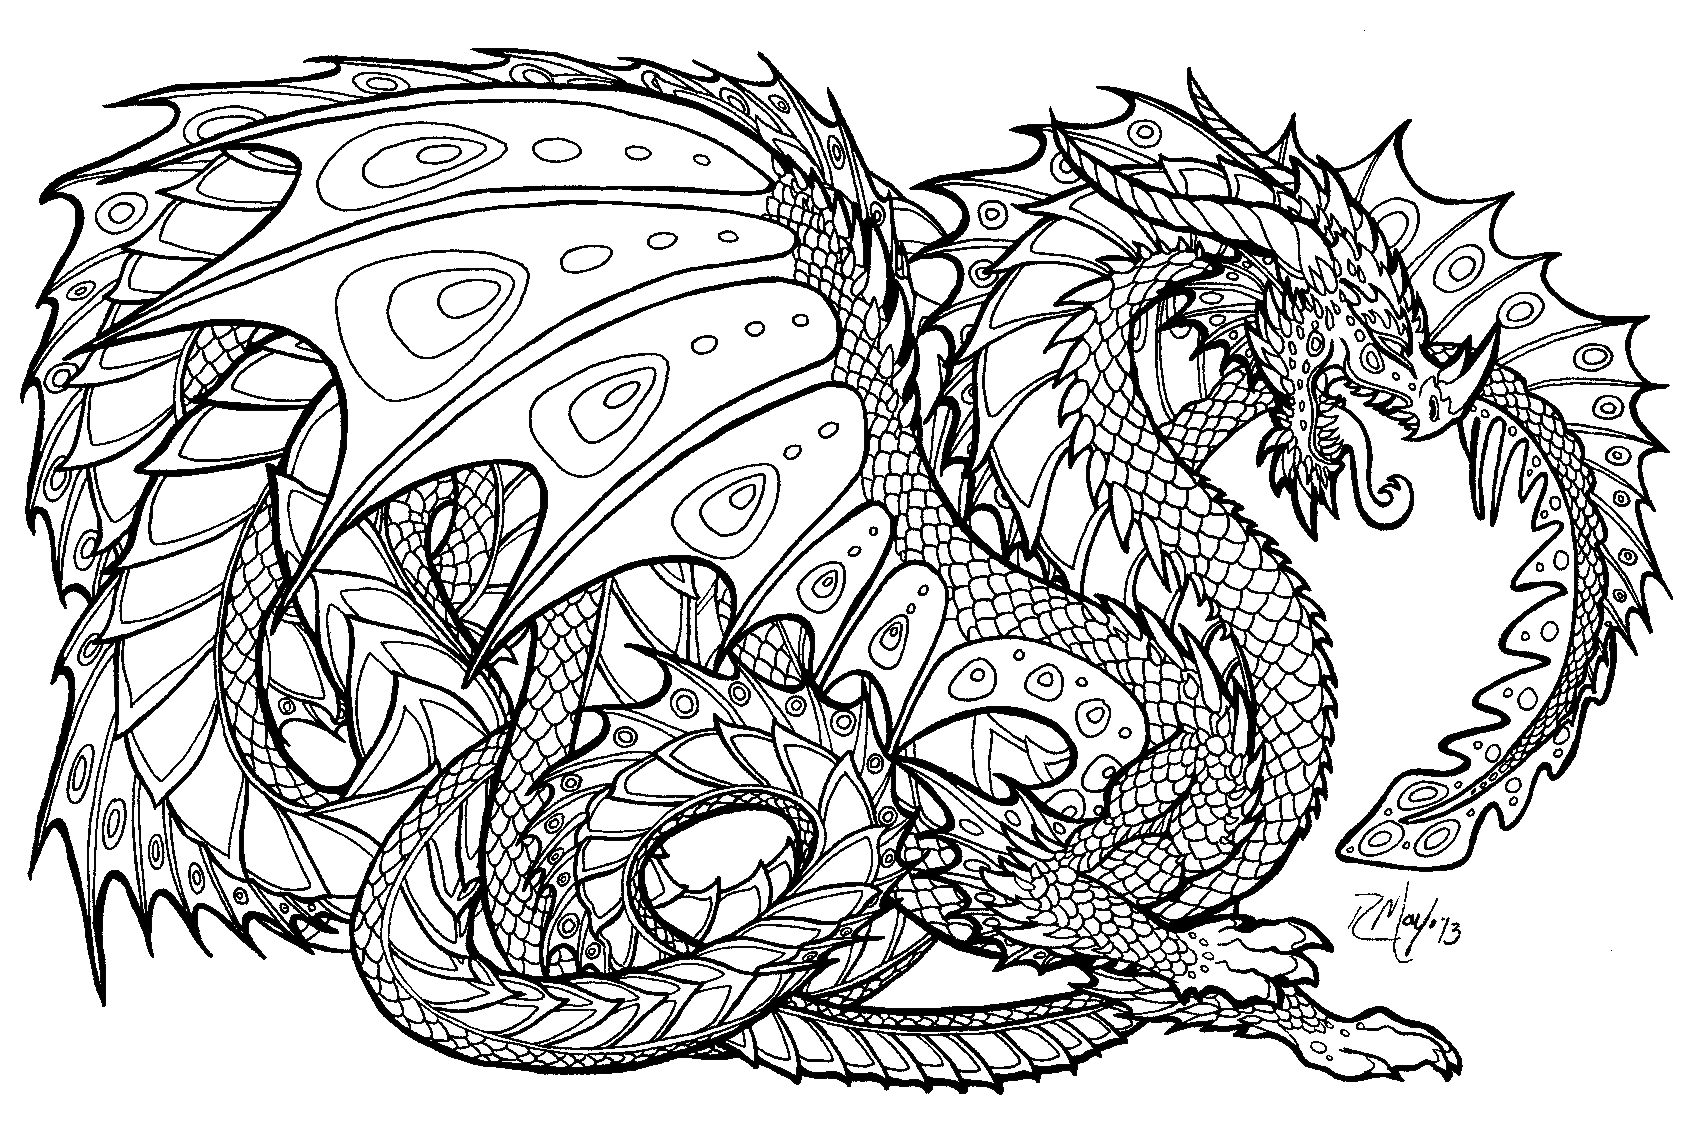 Complicated Coloring Pages to Print Download | Free ...